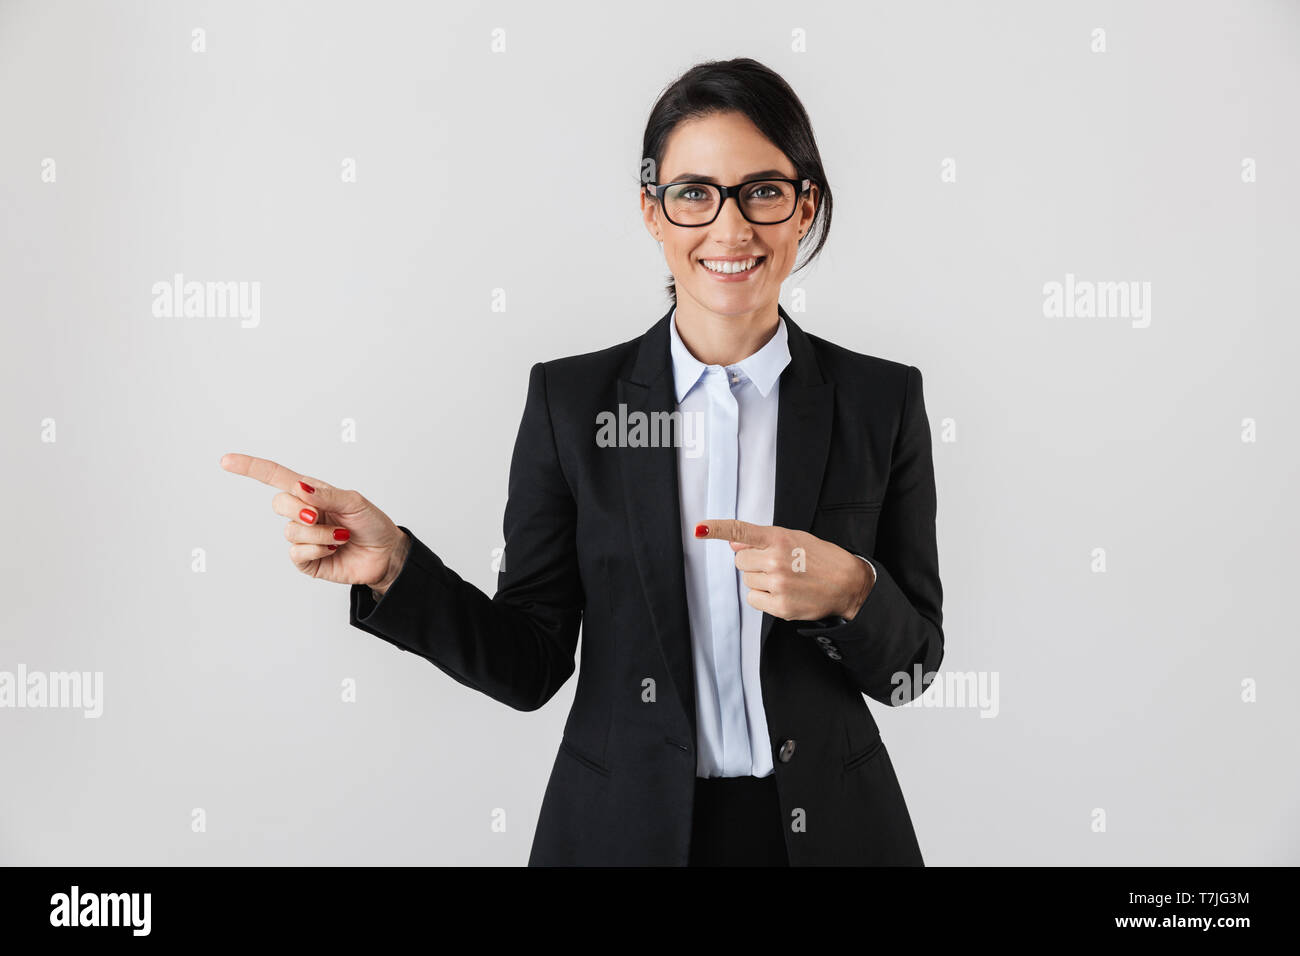 Portrait of european businesswoman 30s in formal wear and eyeglasses pointing fingers aside isolated over white background - Stock Image